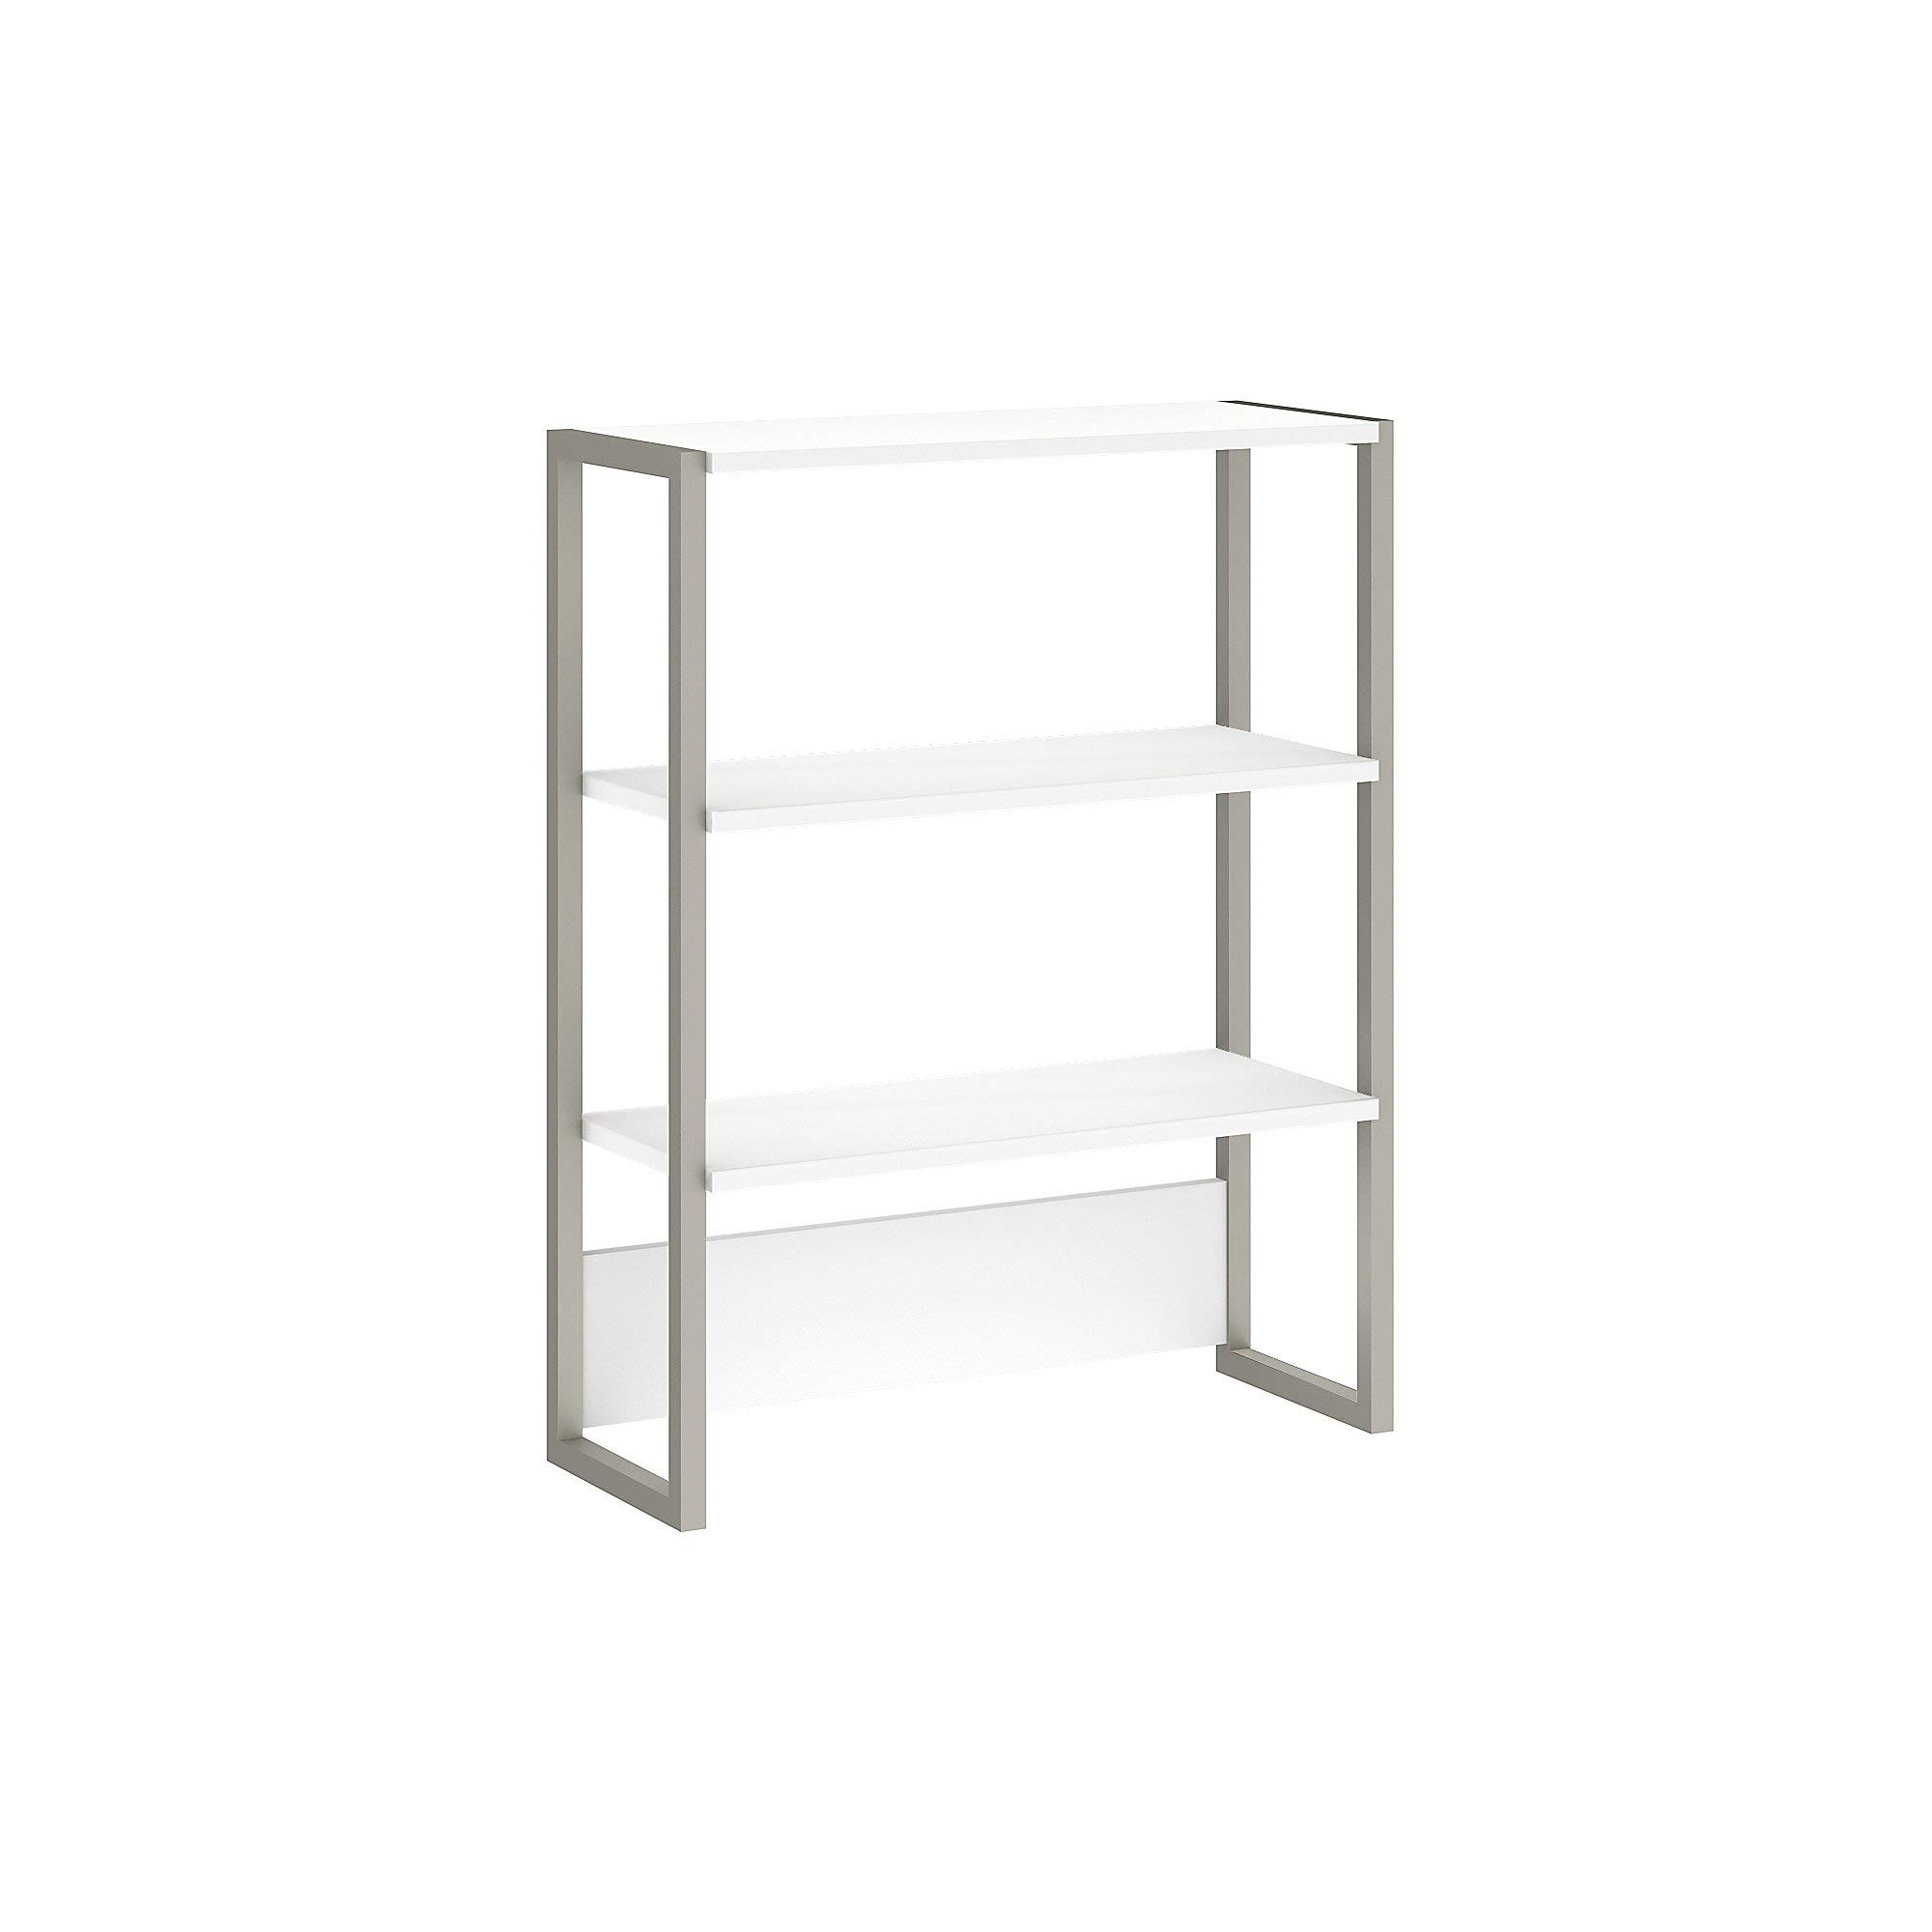 Office by kathy ireland Method Bookcase Hutch in White